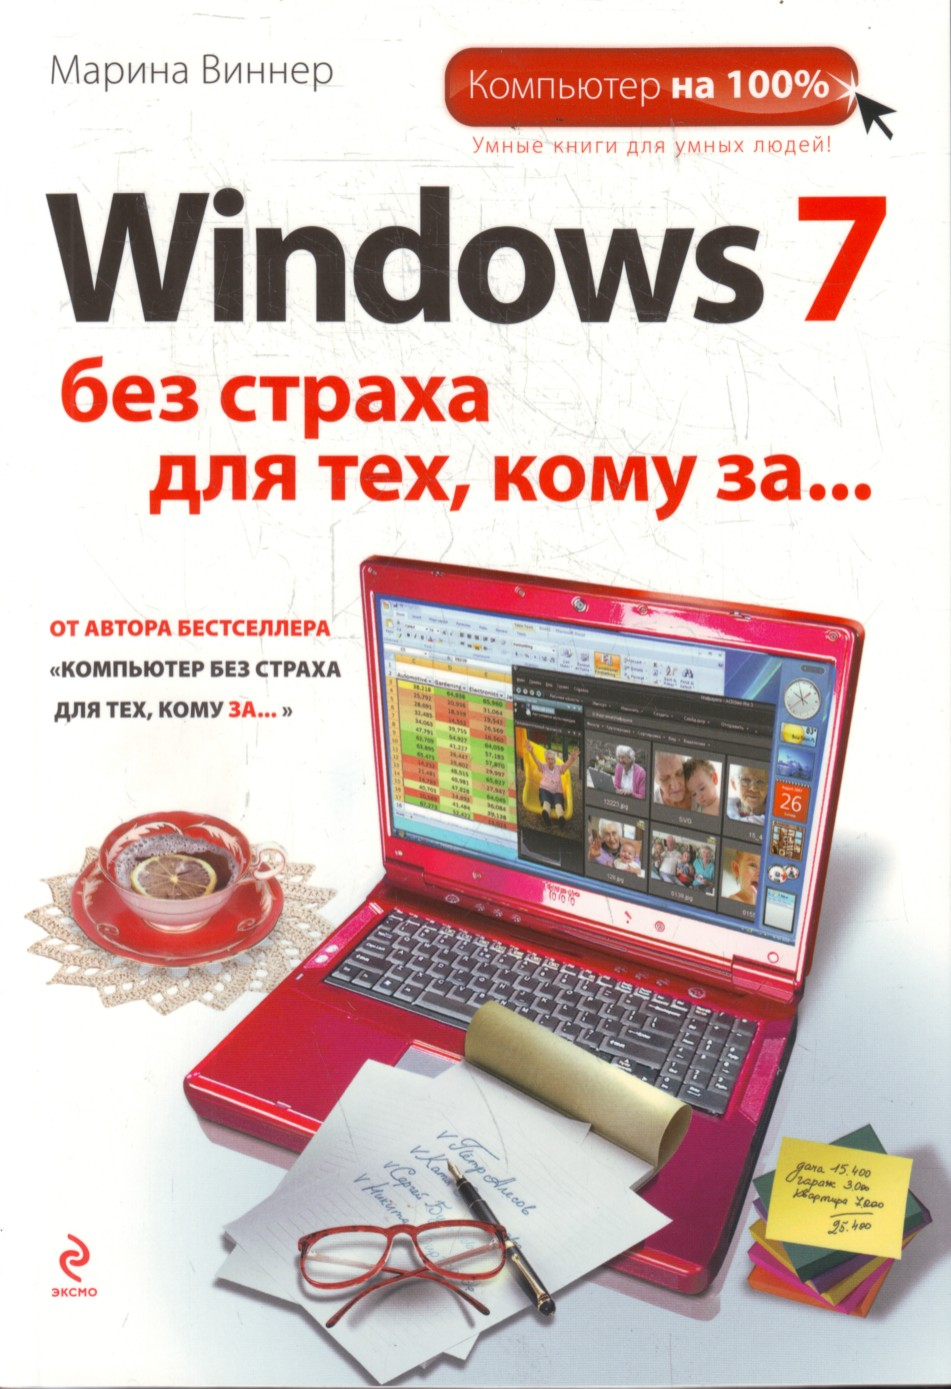 "������ ������ ""Windows 7 ��� ������ ��� ���, ���� ��..."" ����� ""��������� �� 100%"""